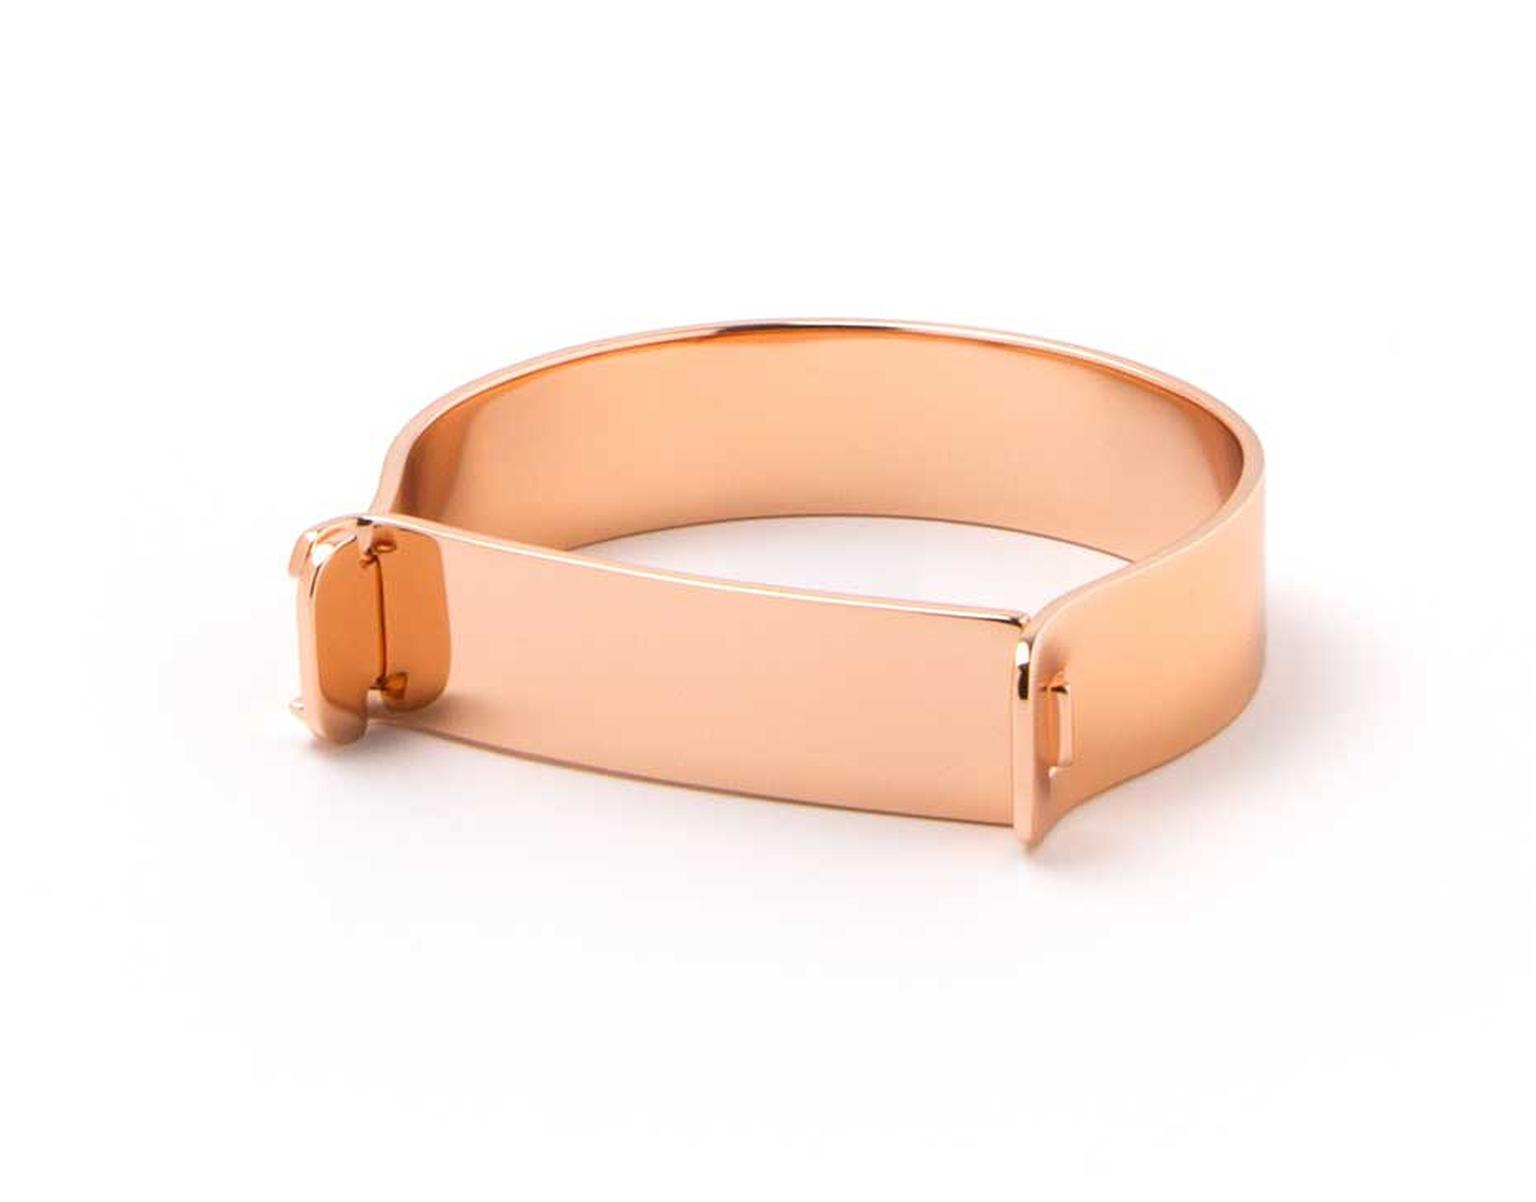 Miansai Hudson cuff for men in rose gold.